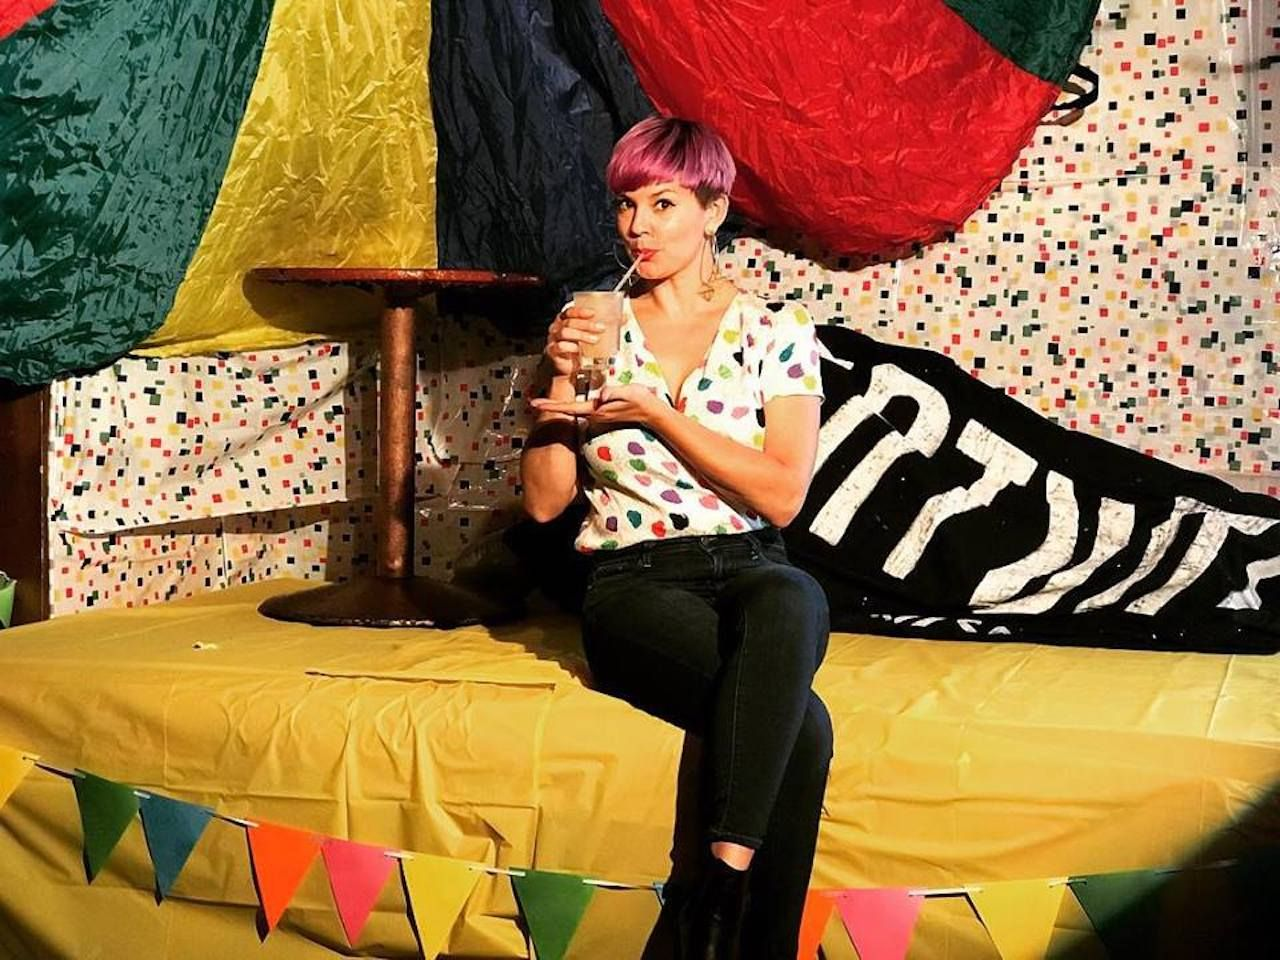 The STUD LGBTQ colorful decor with a girl drinking a cocktail